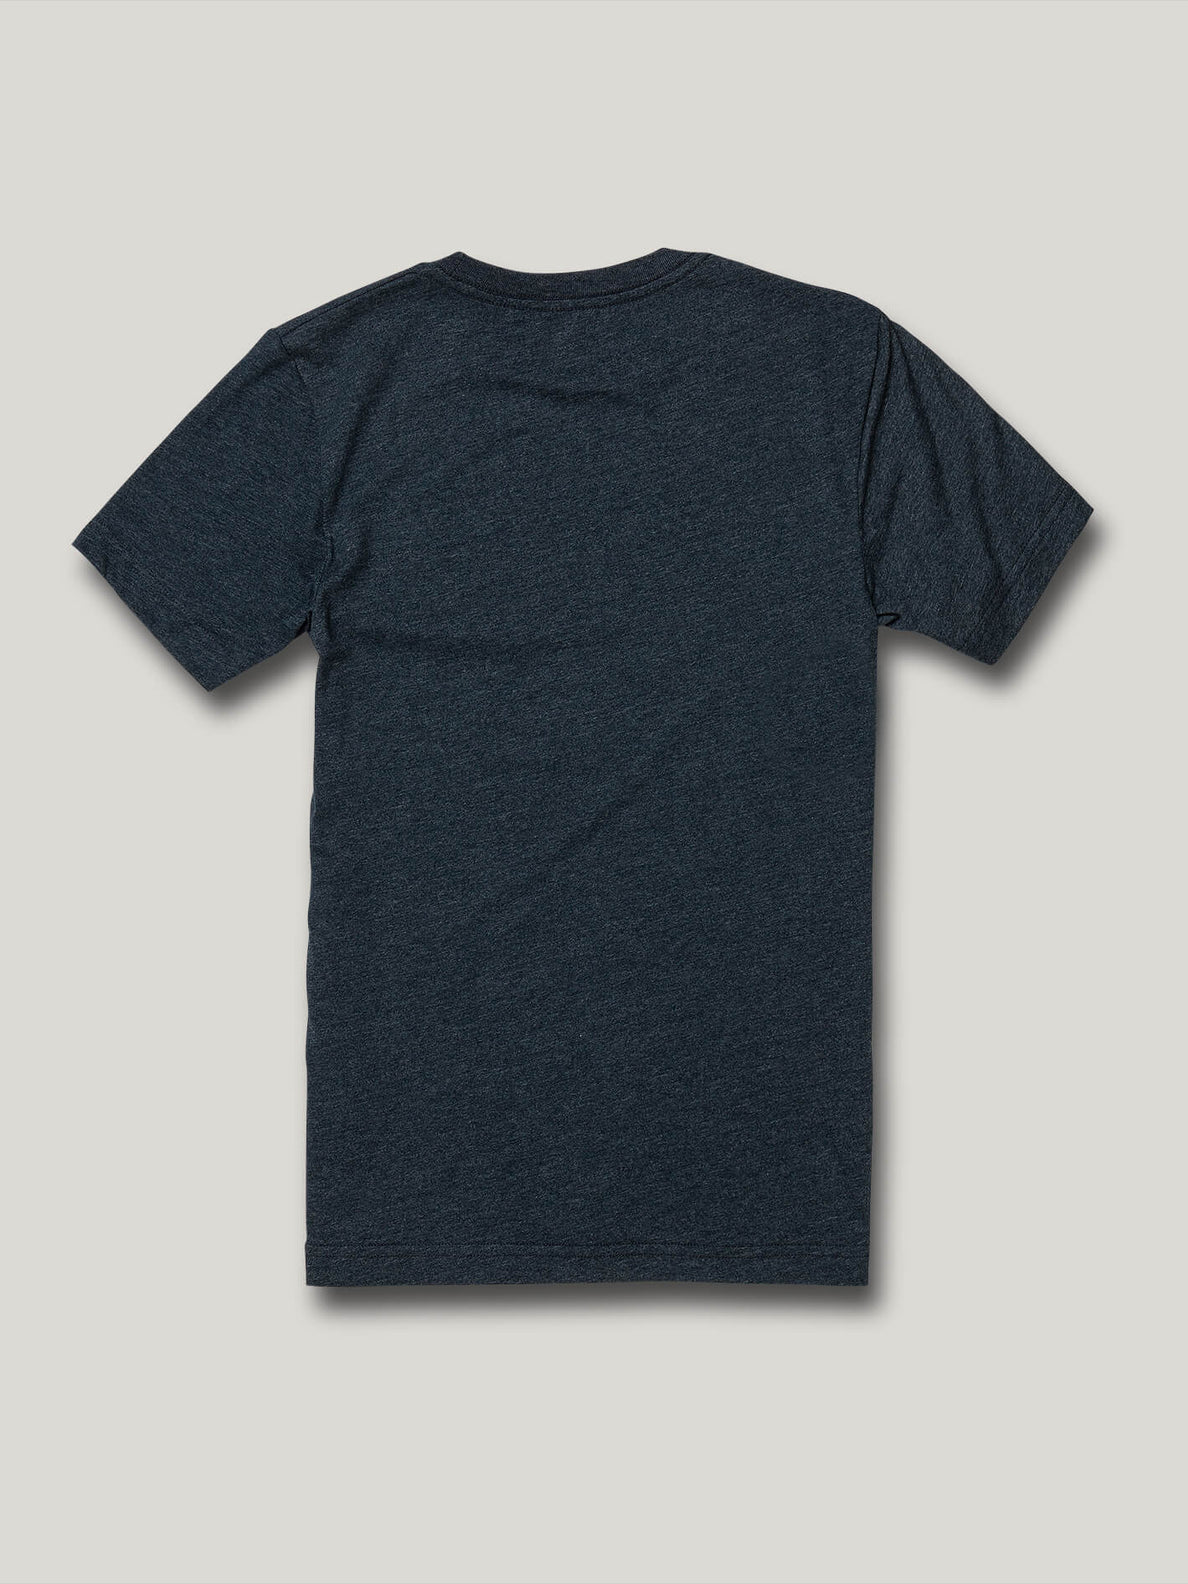 Extrude Short Sleeve Tee Youth - Navy (C5722004_NVY) [B]